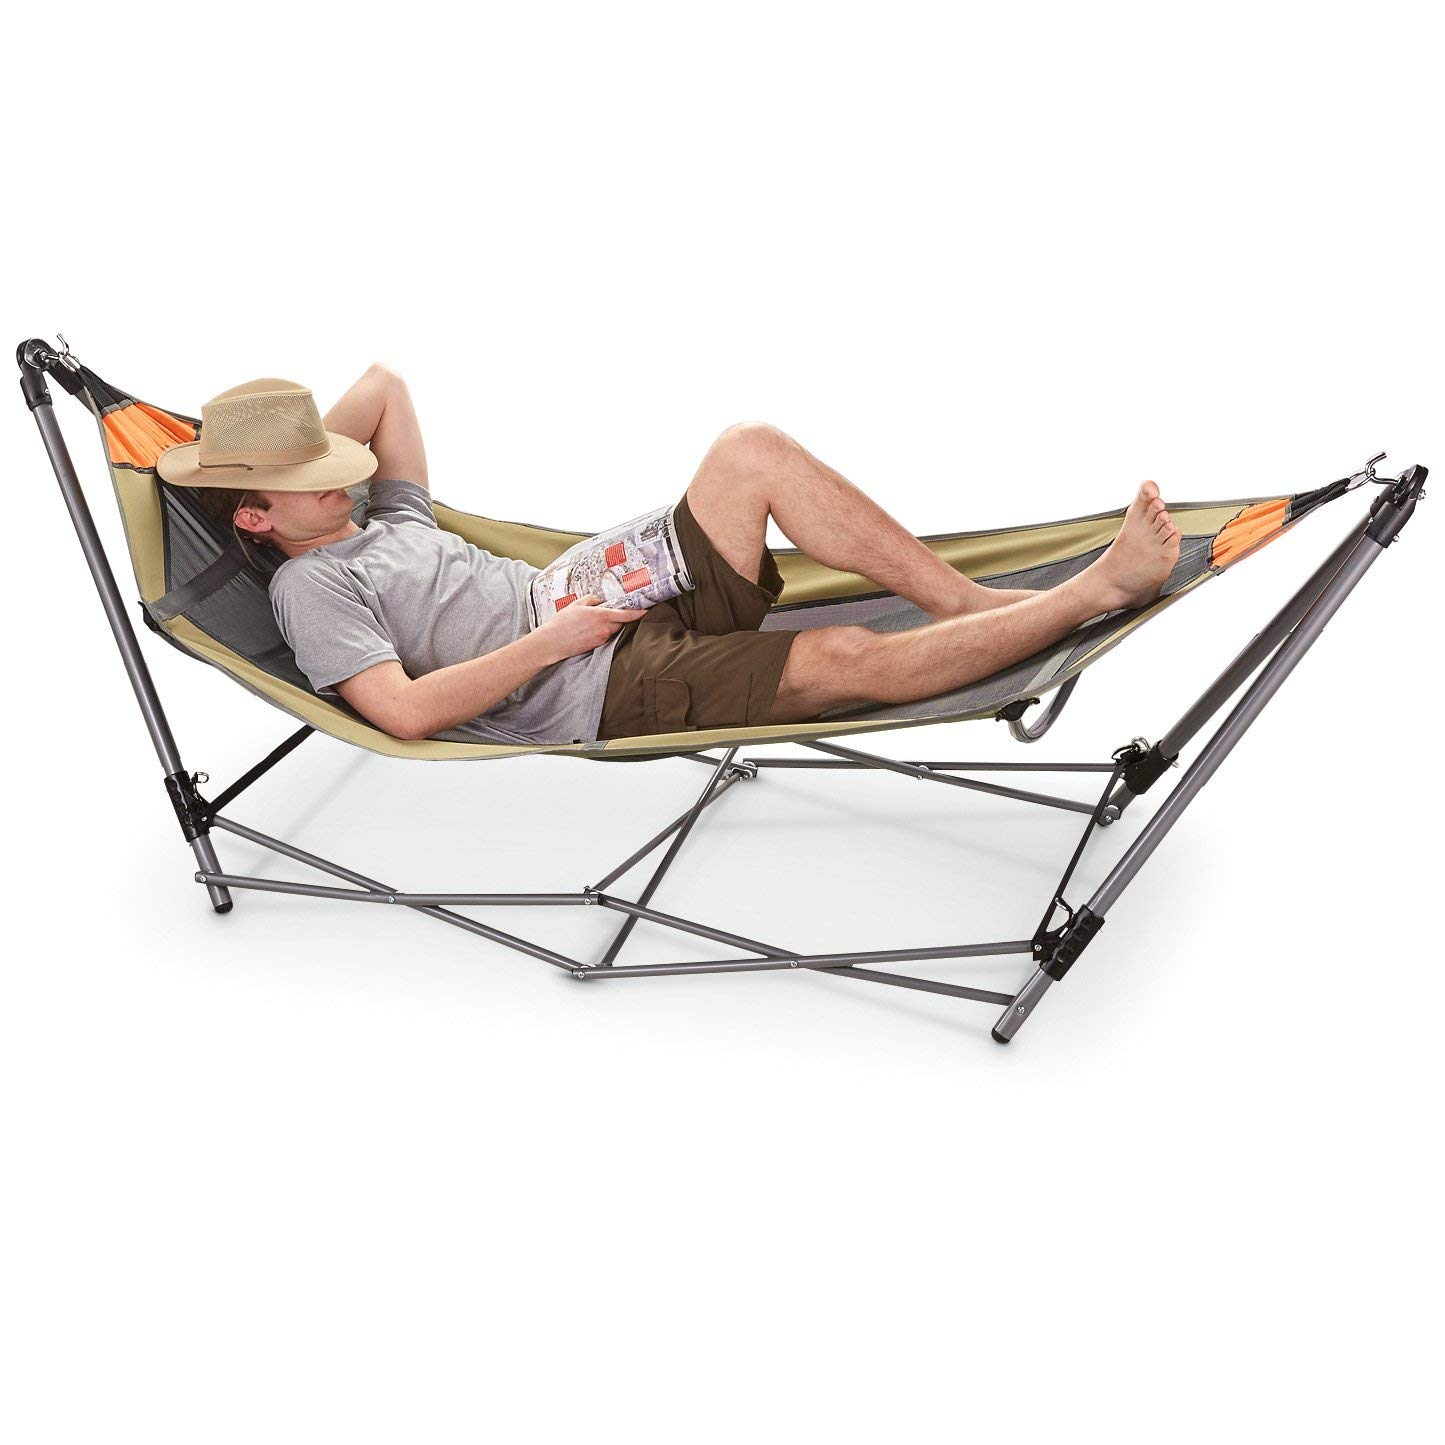 Top 10 best hammock for backyard in 2018 review